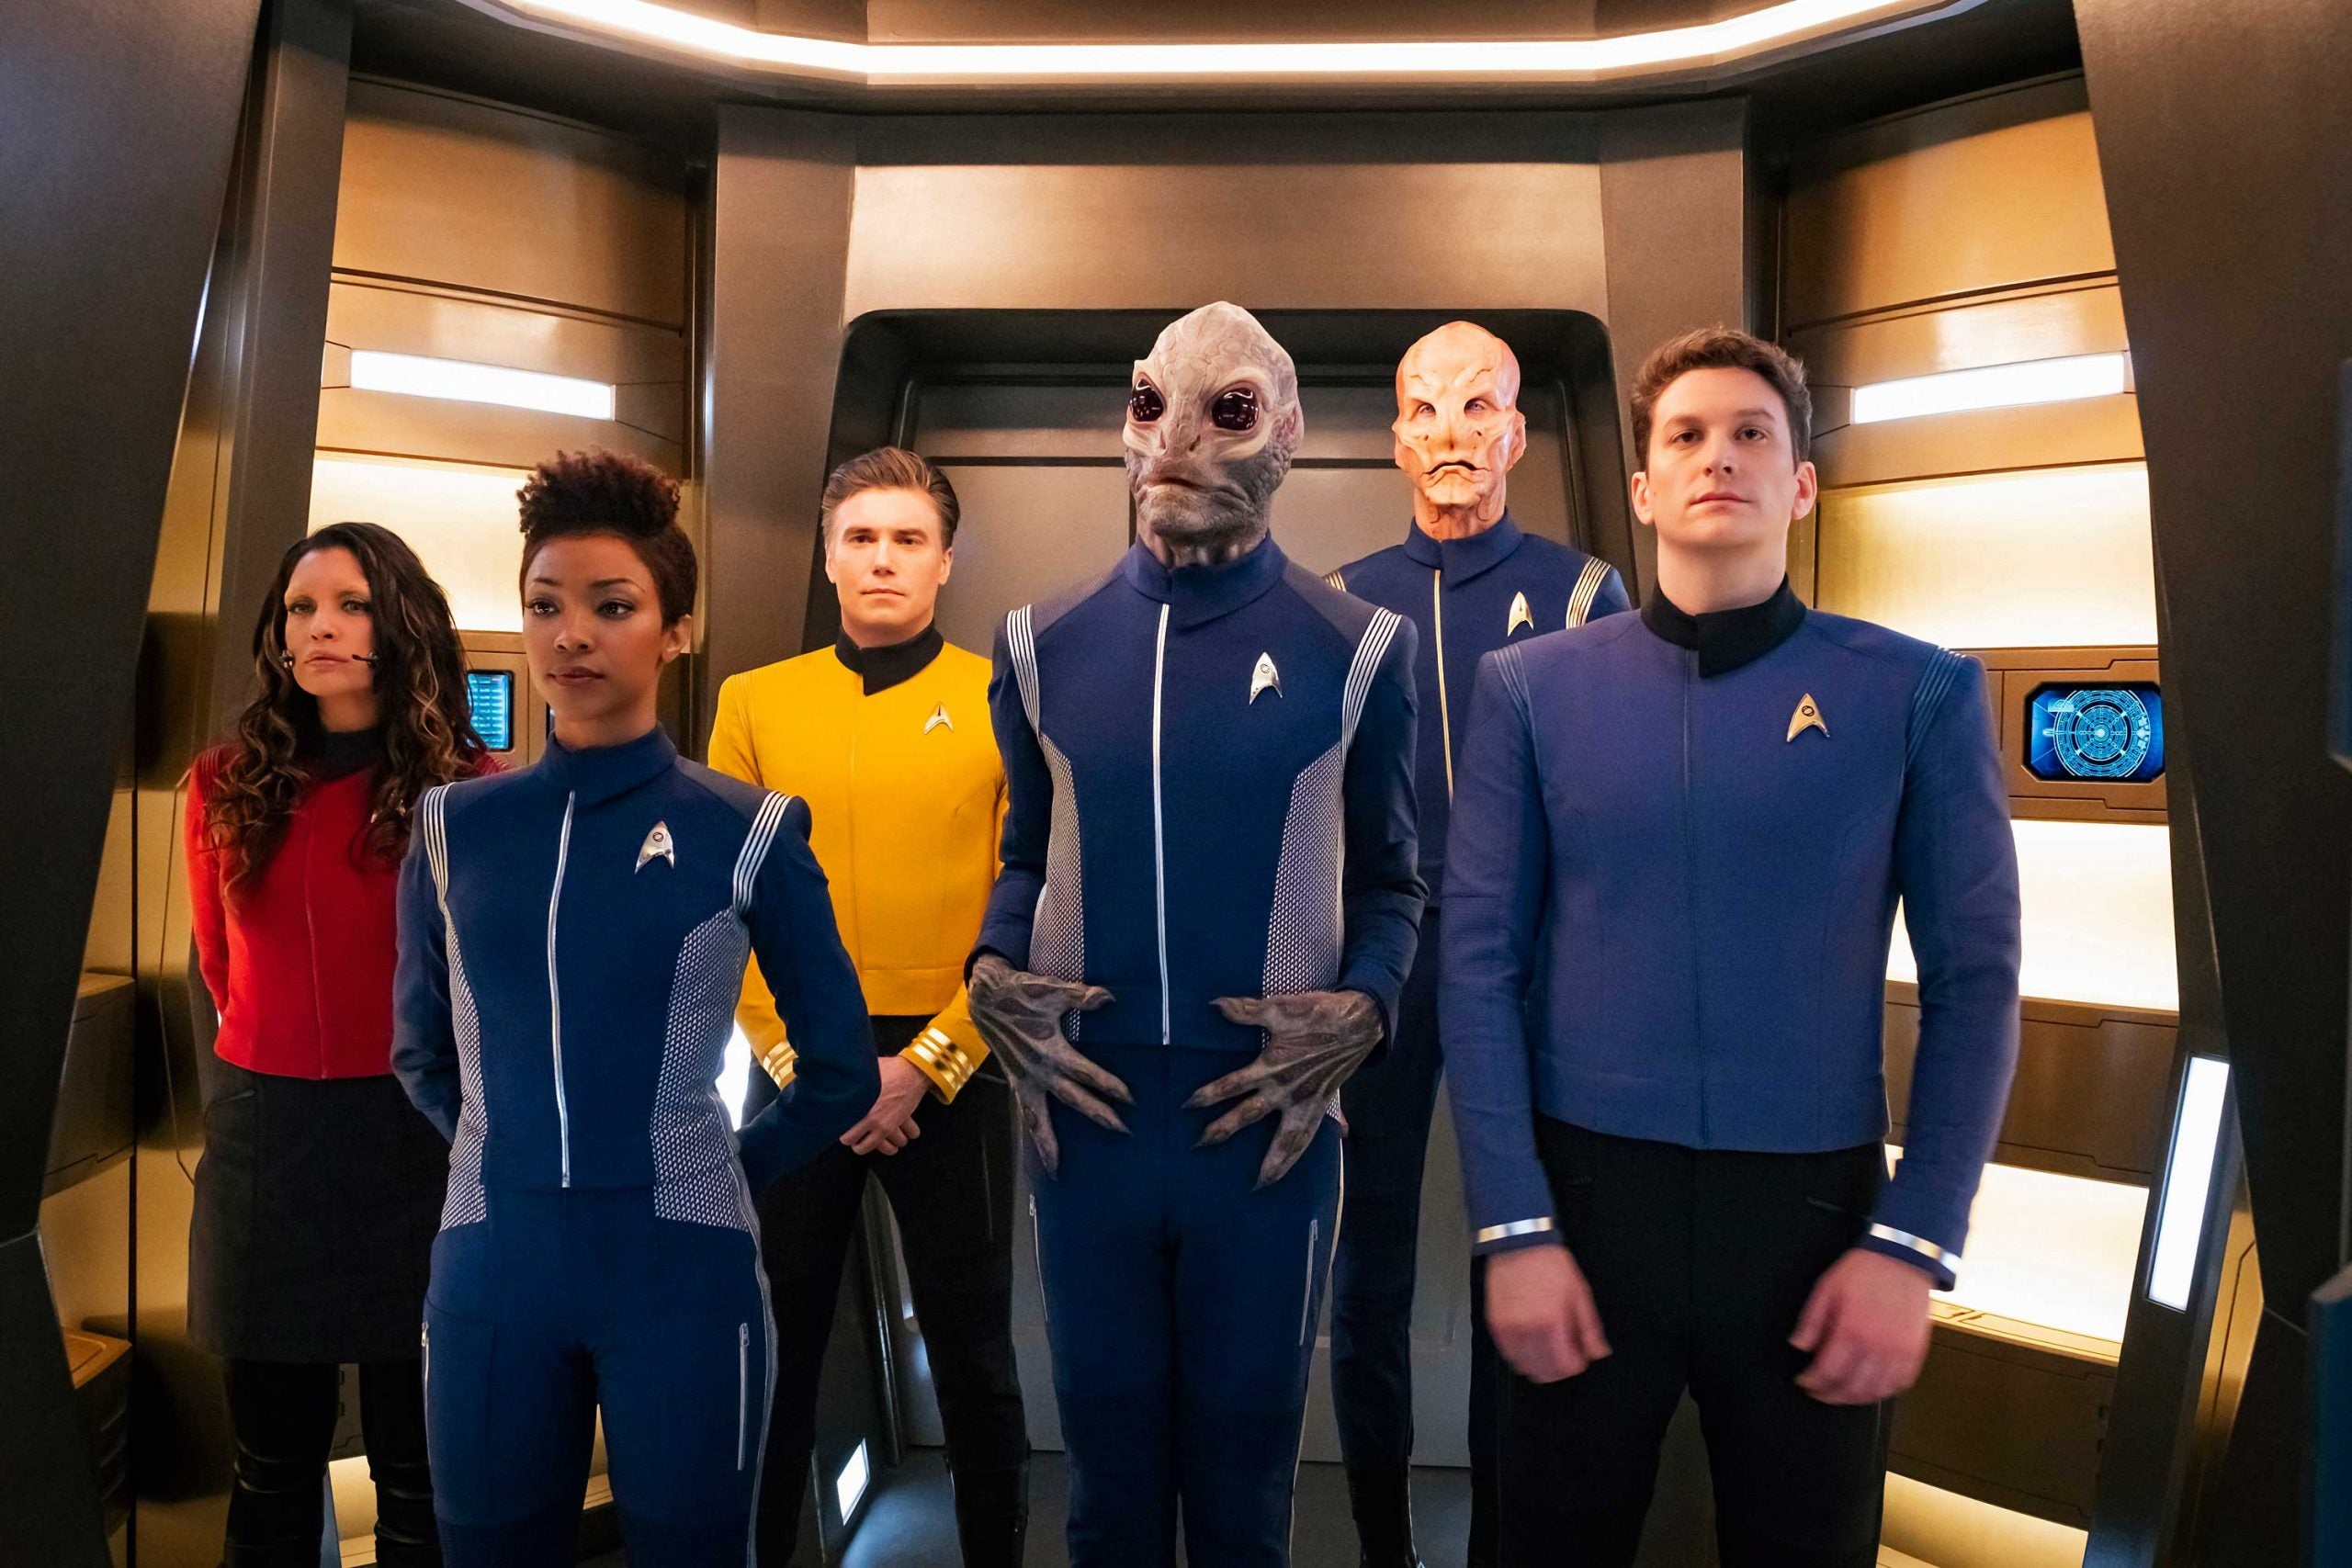 The writers of Star Trek: Discovery seem to have concluded it's a show about Star Trek